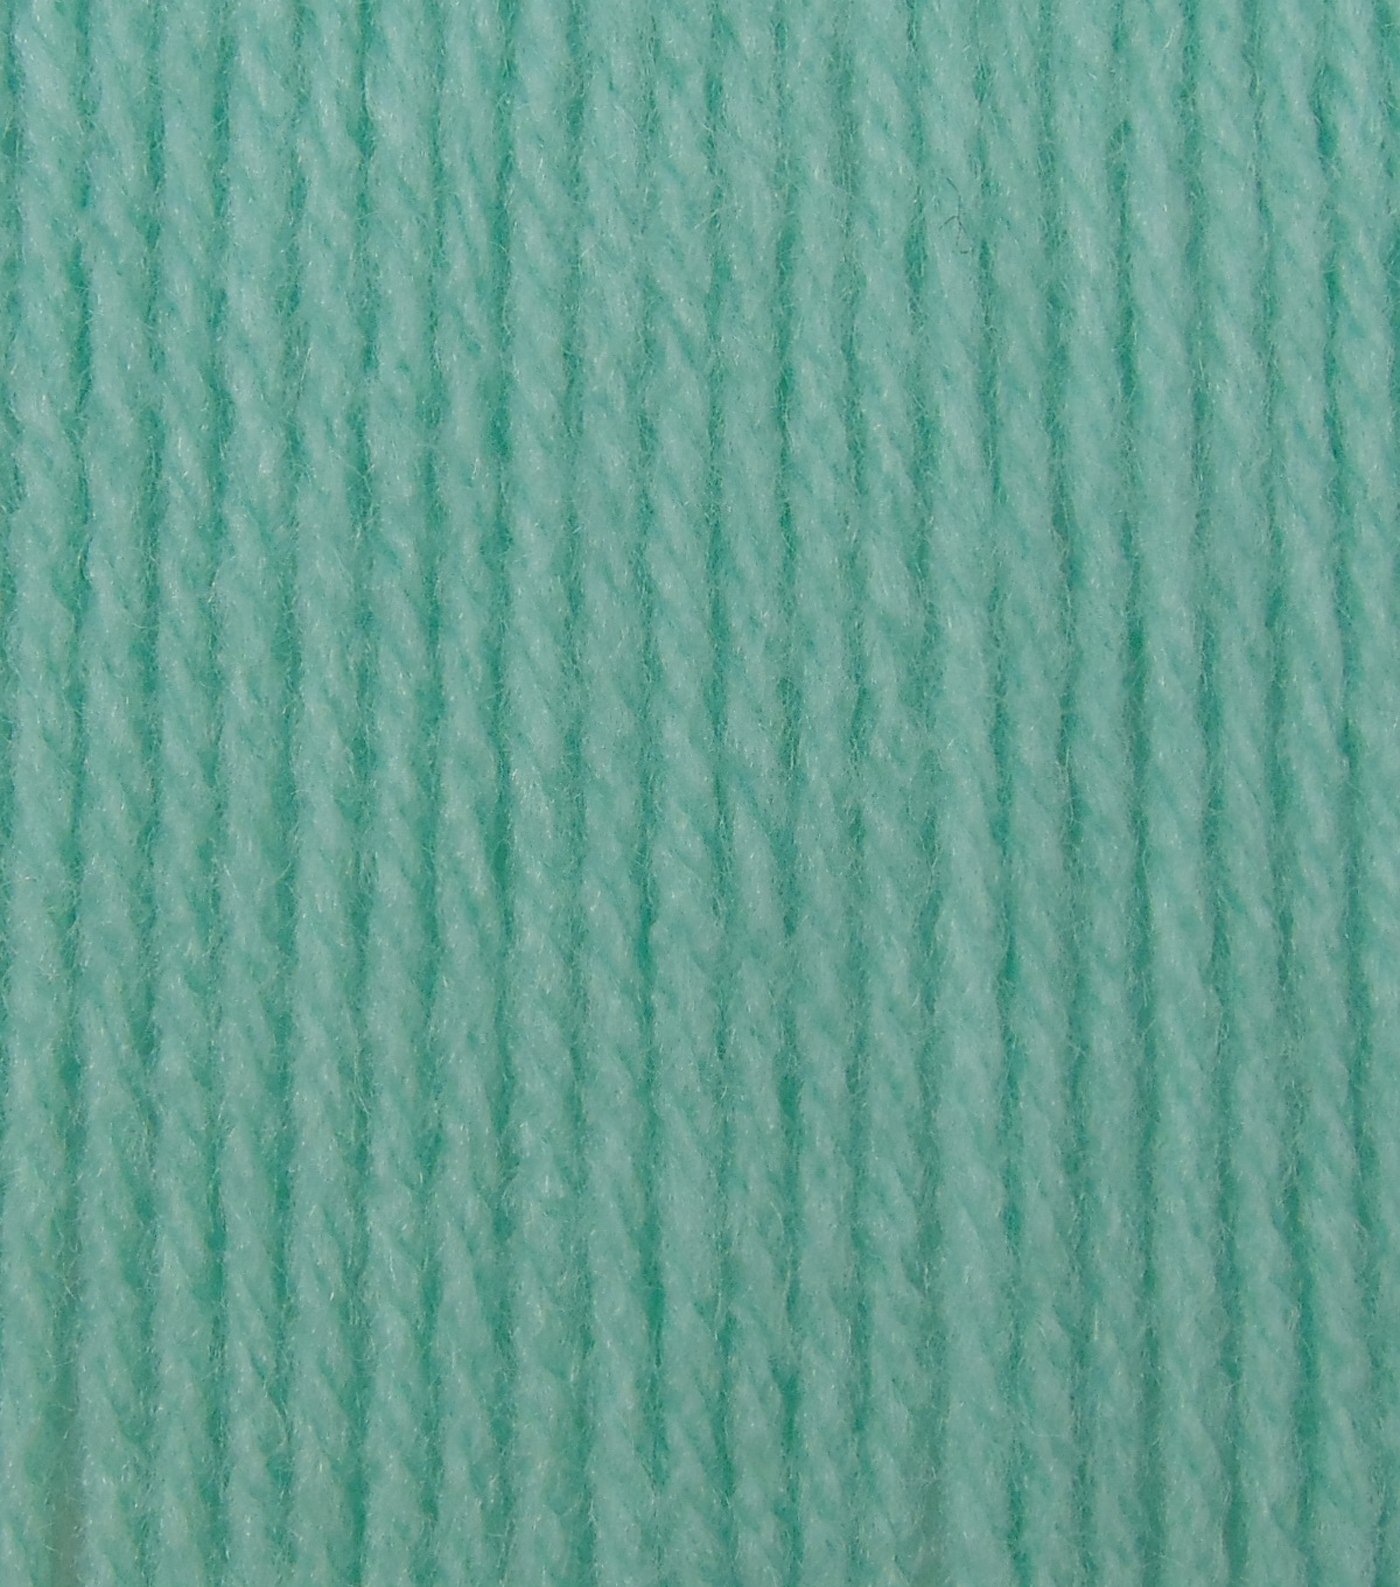 Big Twist Collection Value Worsted Yarn, Light Teal